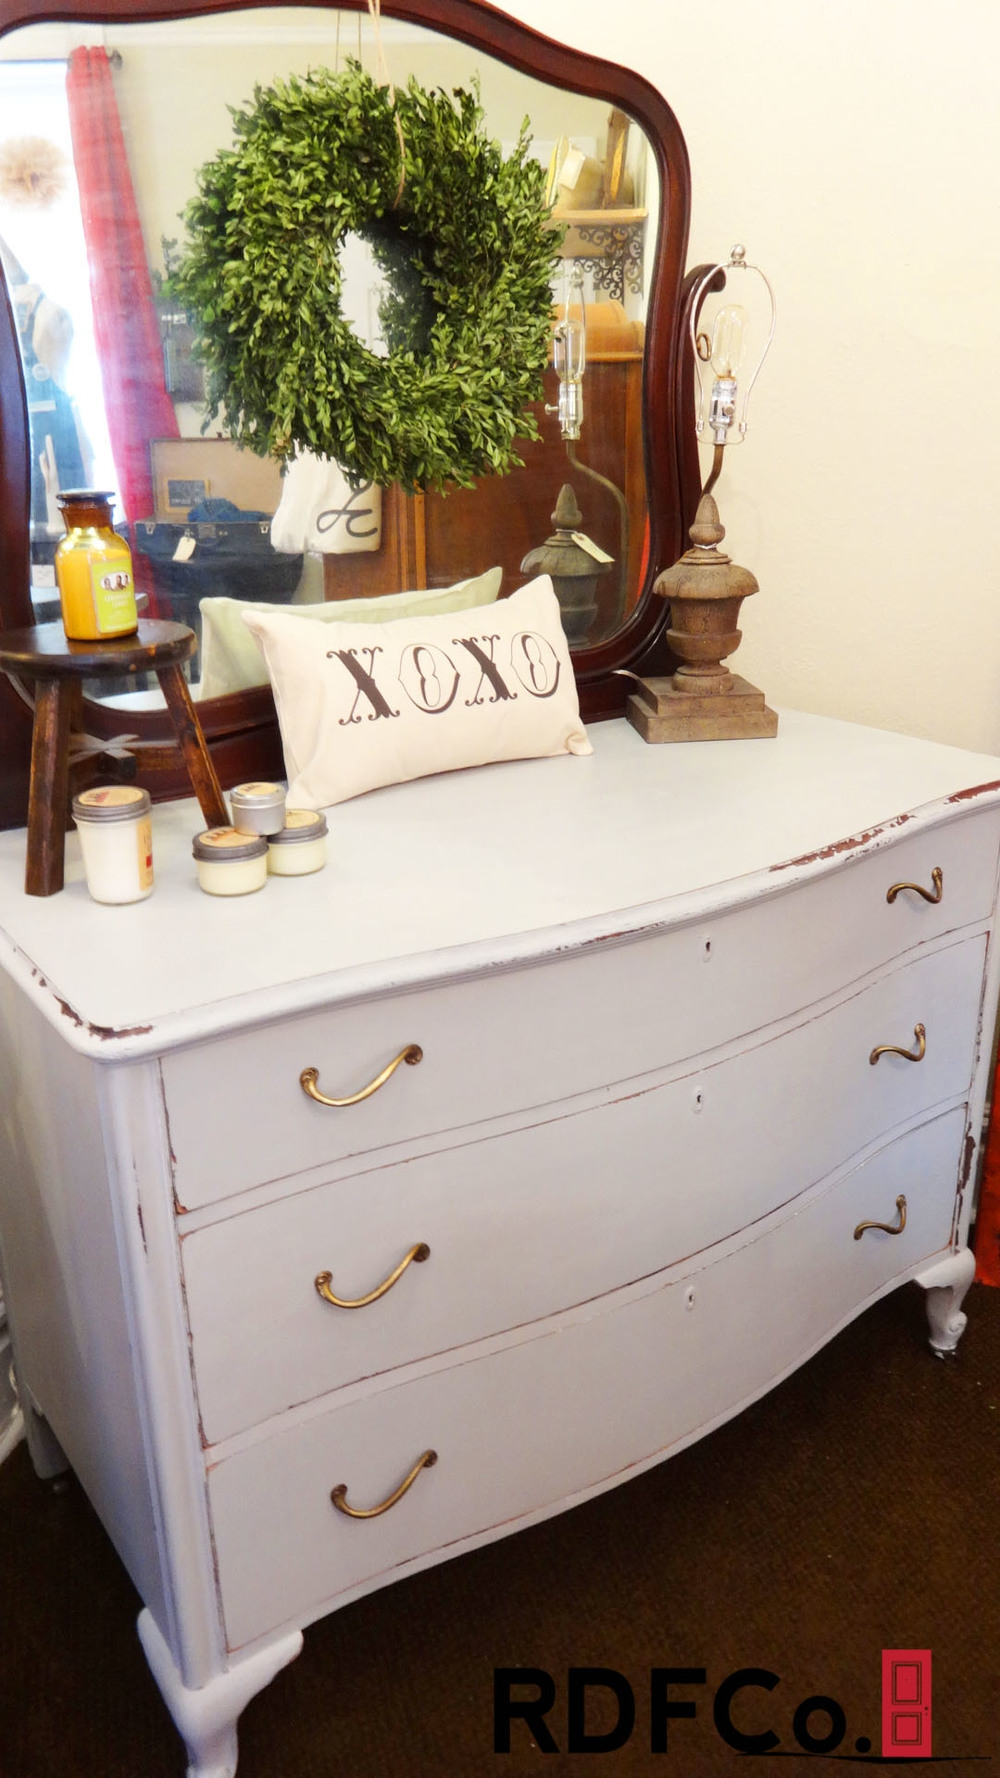 Custom painted furniture service in St. Louis